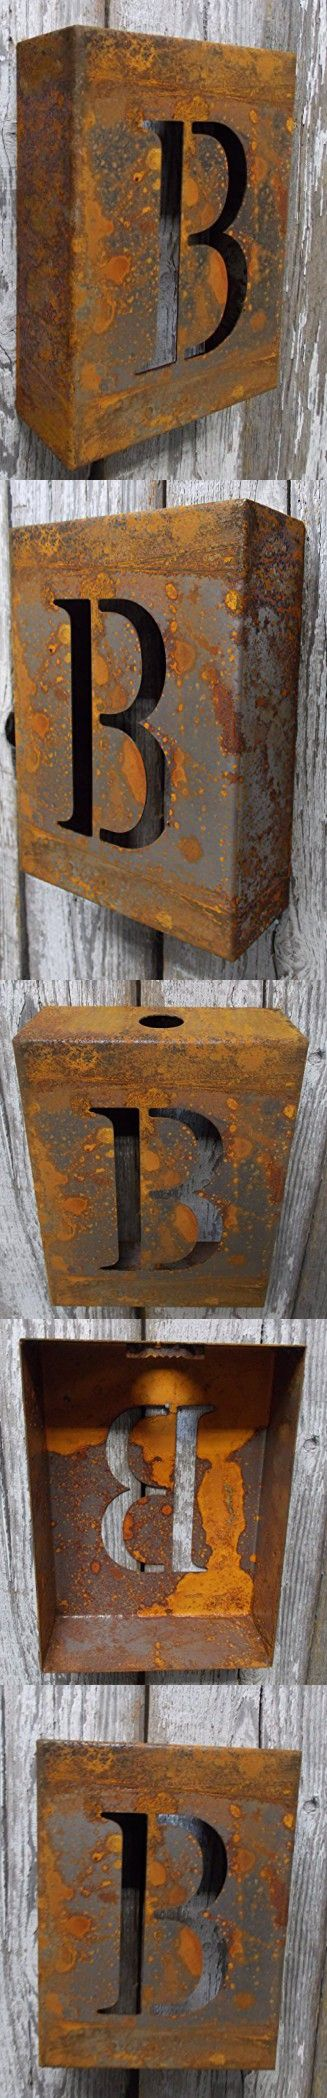 "Fun 8"" x 6"" x 2.5"" Laser Cut Rusted Metal Letter ""B"" Rustic Industrial Wall Shelf Rusty Decor"